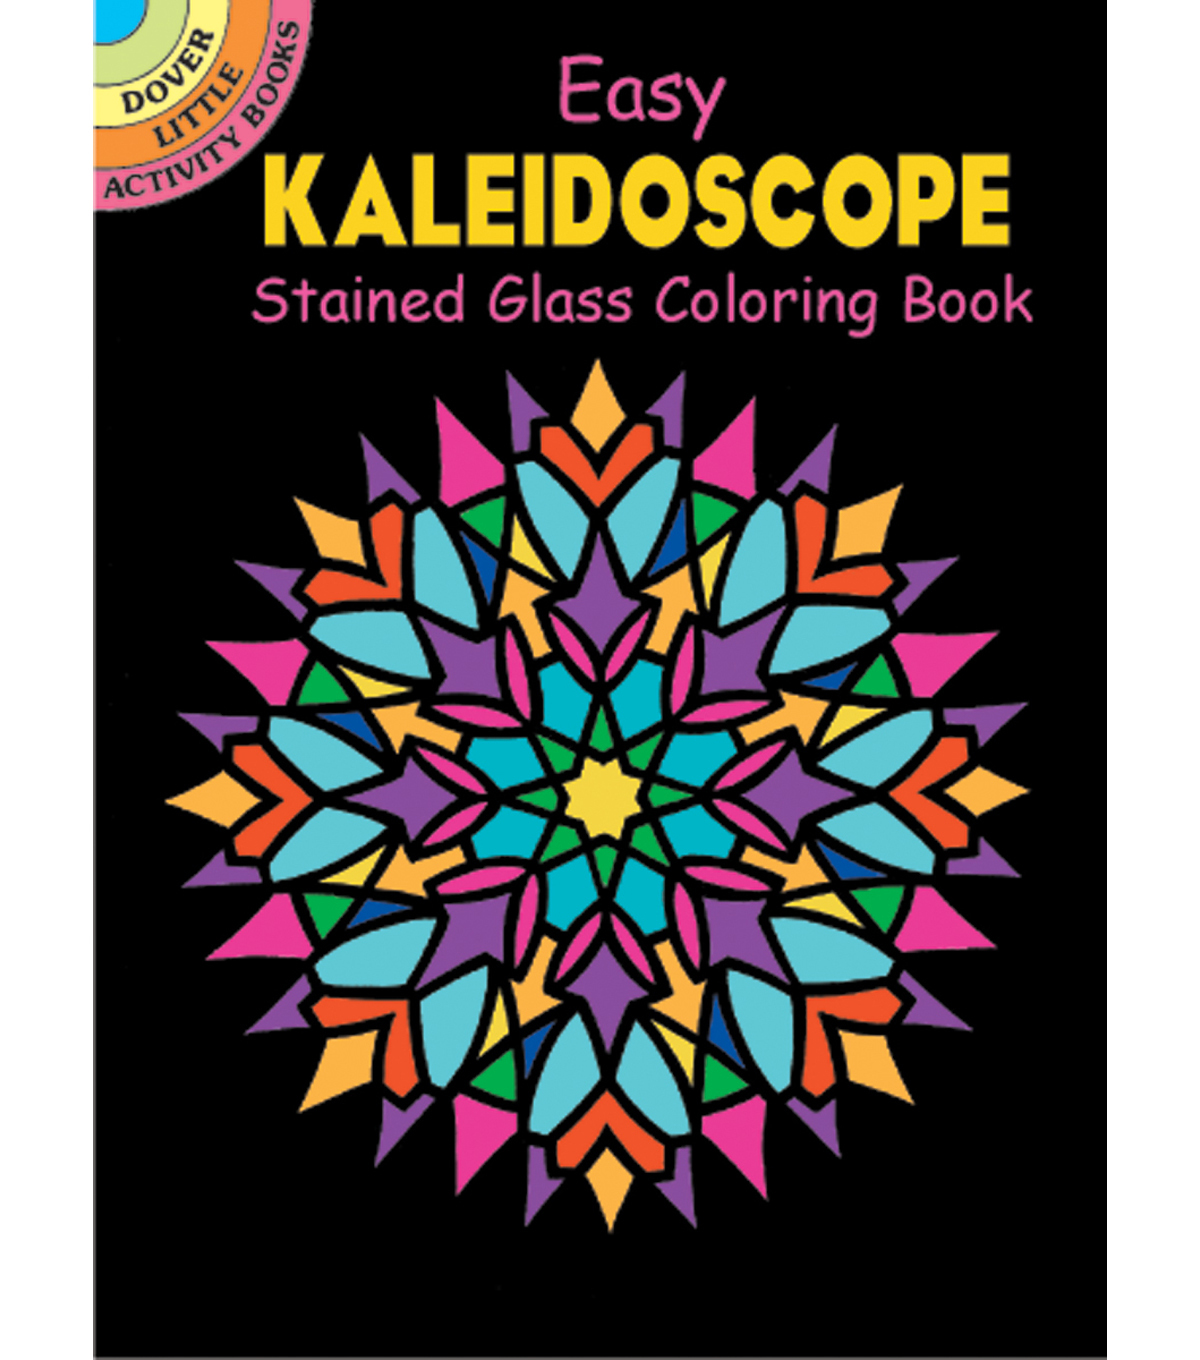 Kaleidoscope Stained Glass Coloring Book for Adults | JOANN